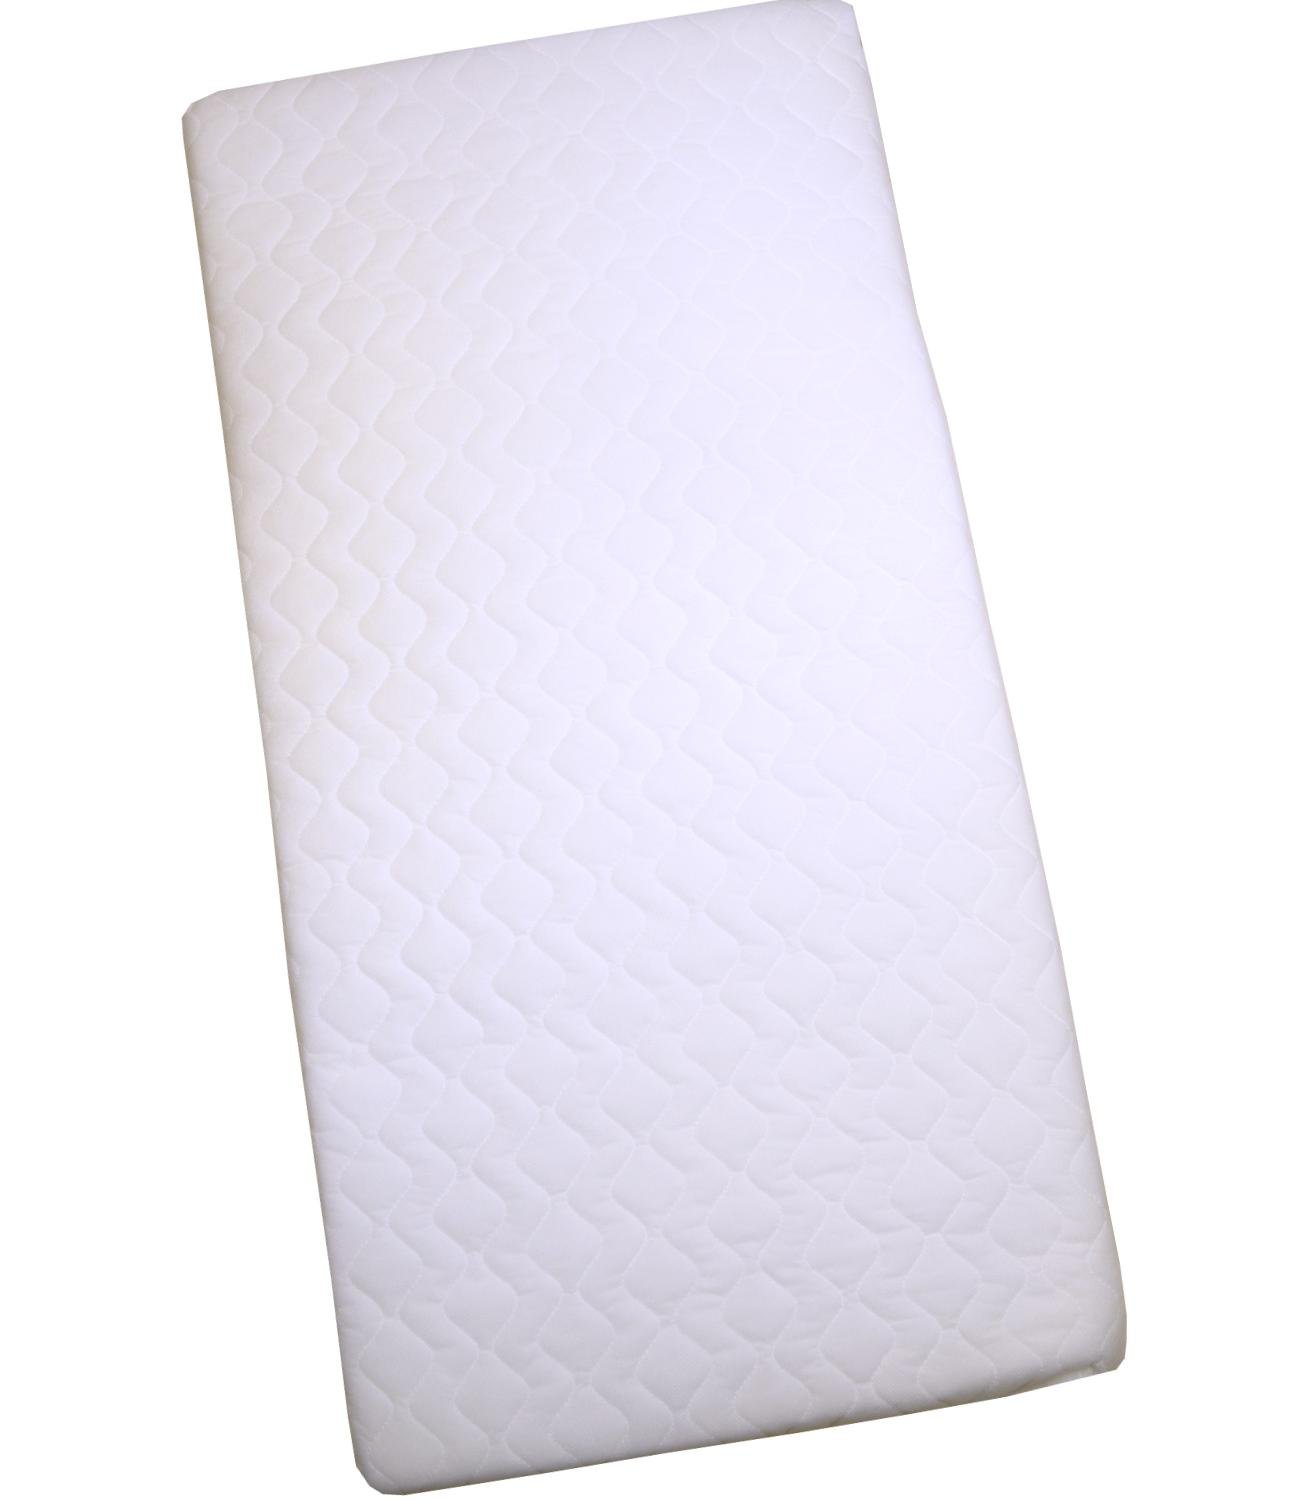 BabyPrem Crib/Pram Mattress 84 x 43 x 3.5cm Quilted Option